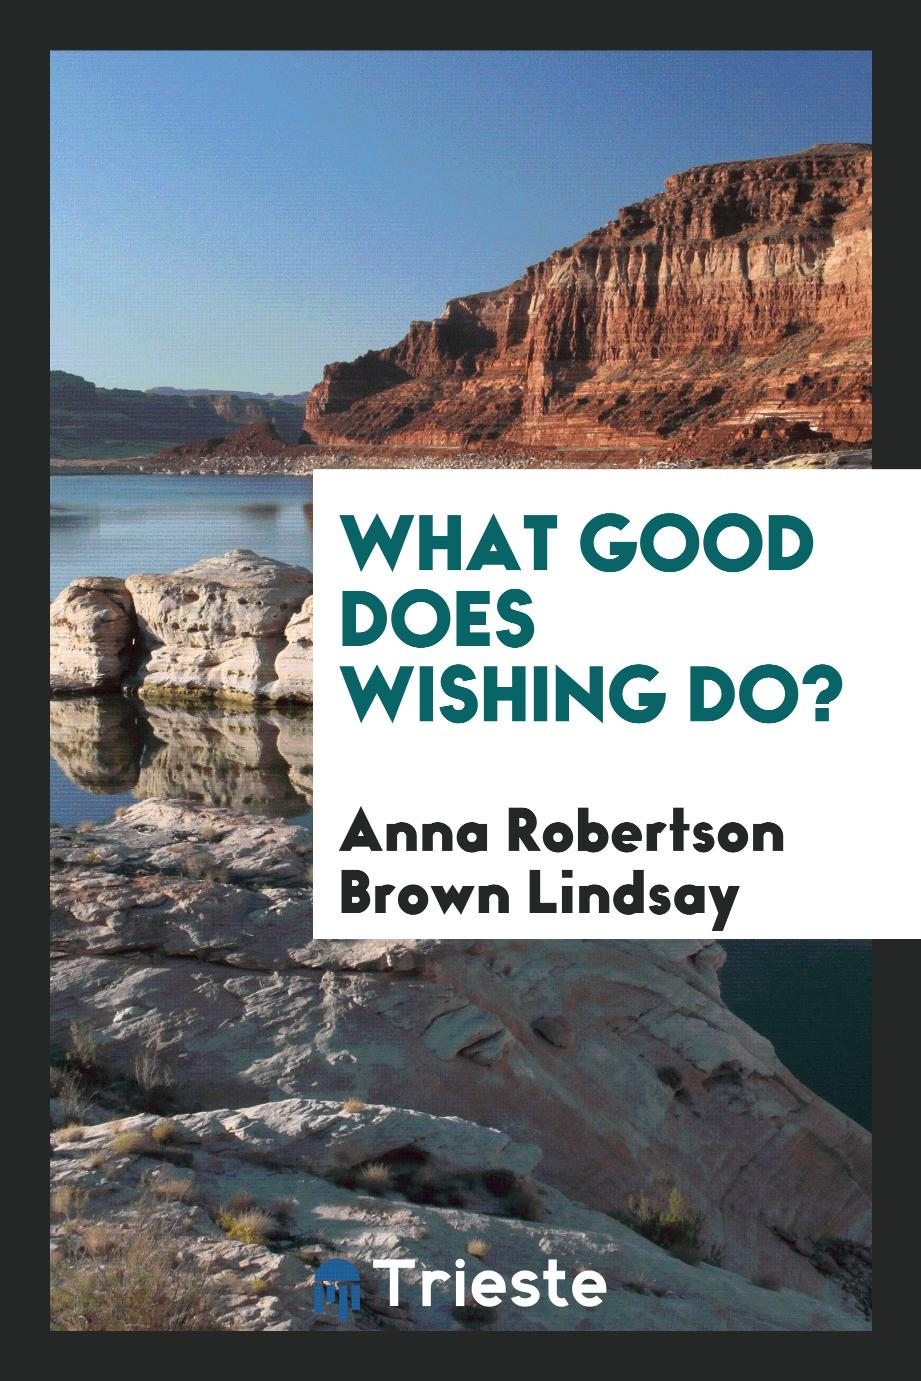 What good does wishing do?